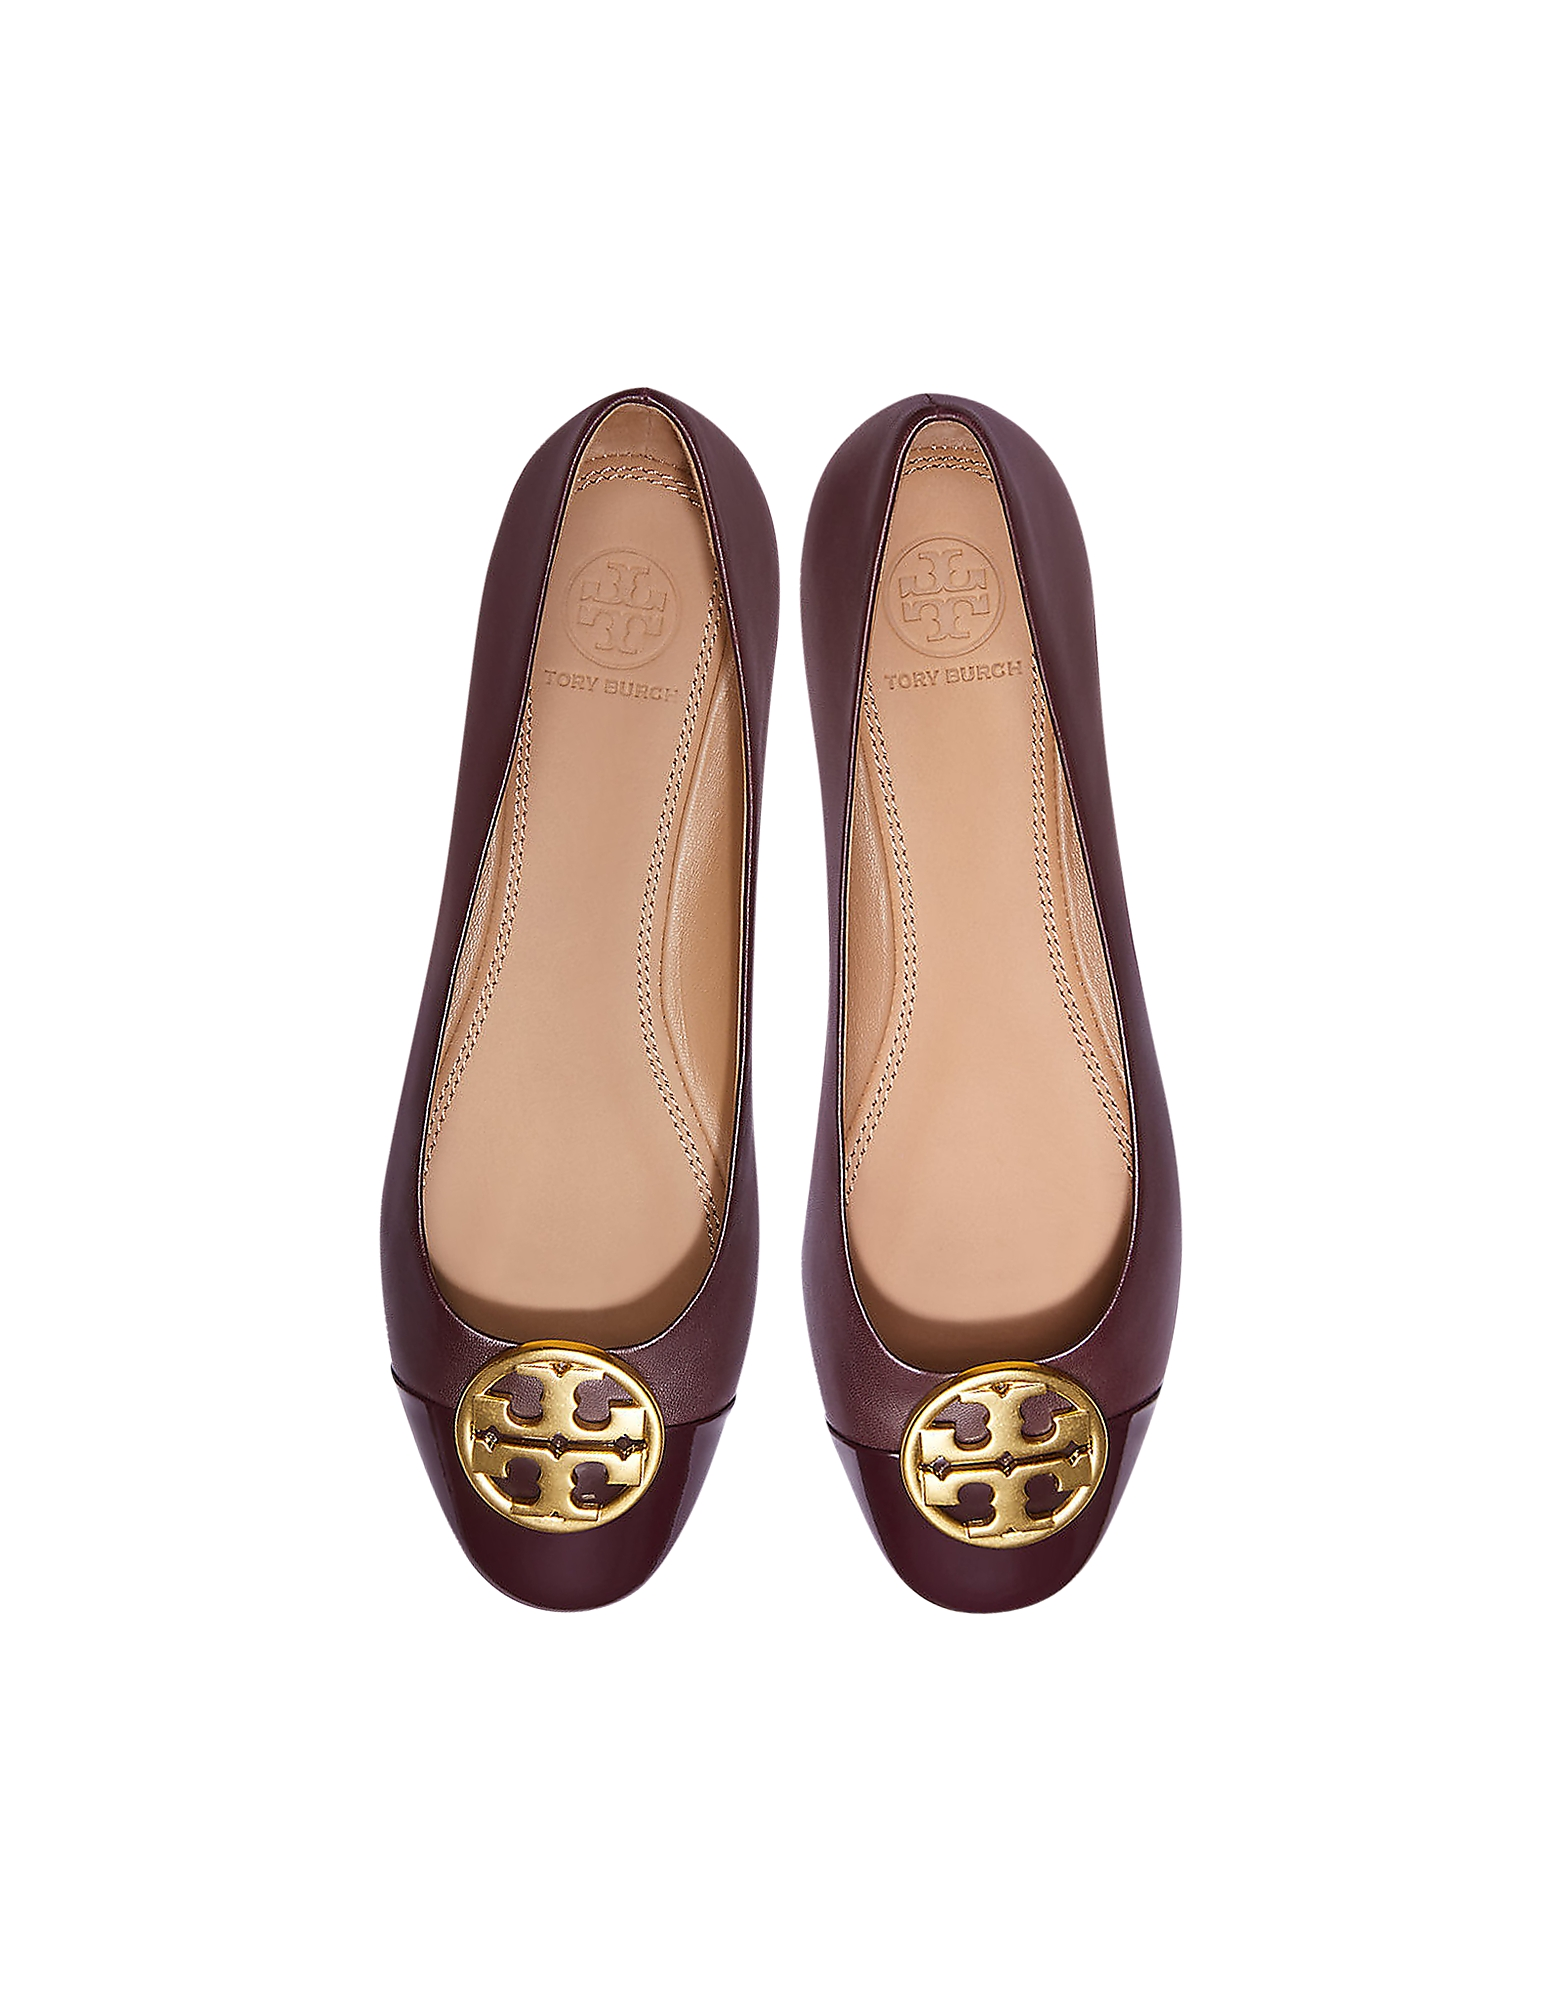 Tory Burch Shoes, Burgundy Nappa & Patent Leather Chelsea Cap-Toe Ballet Flats